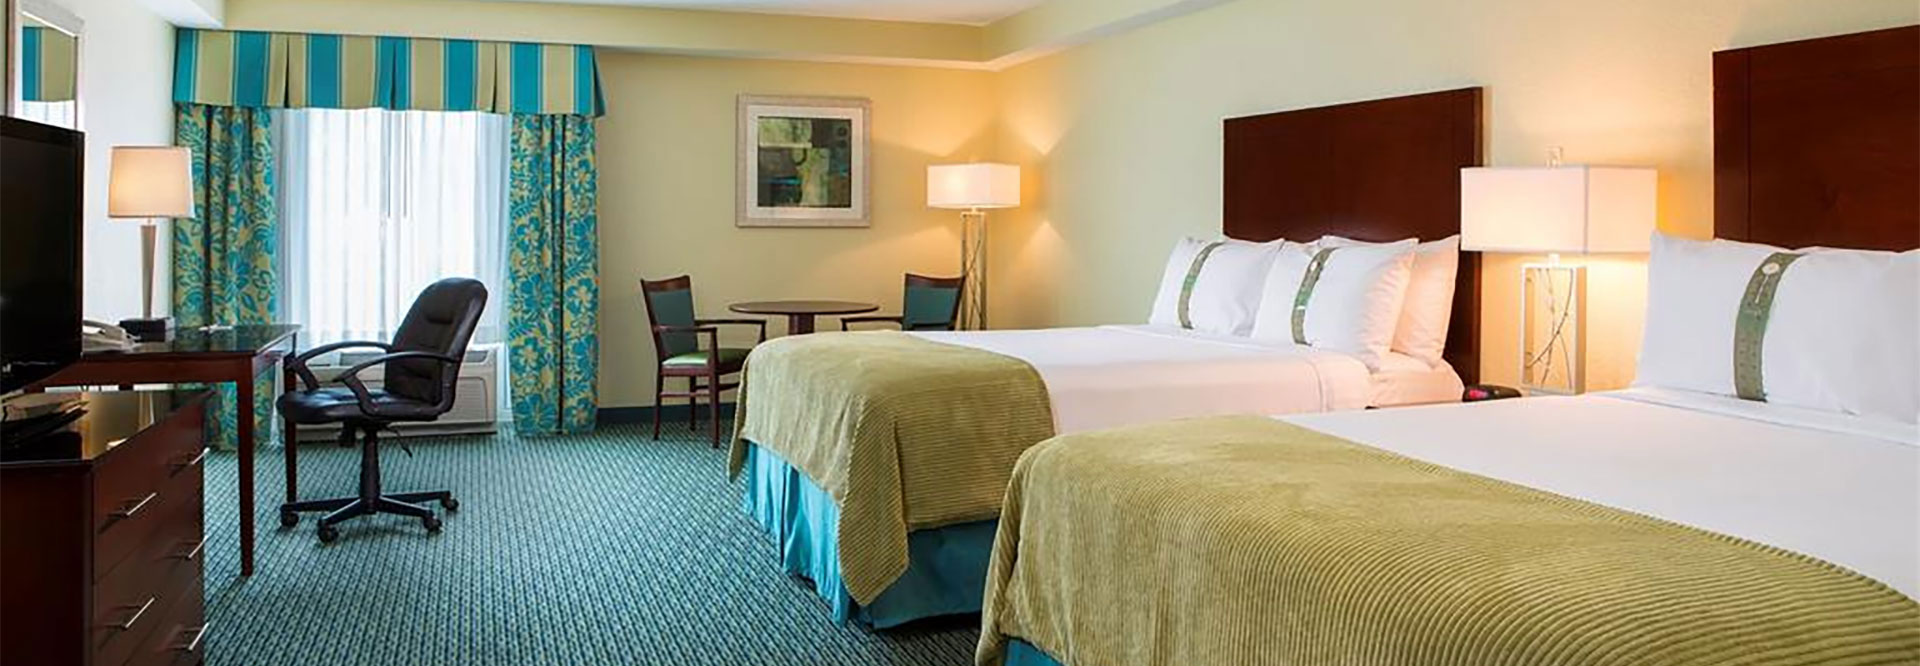 hotel rooms, suites and kidsuites near walt disney world orlando